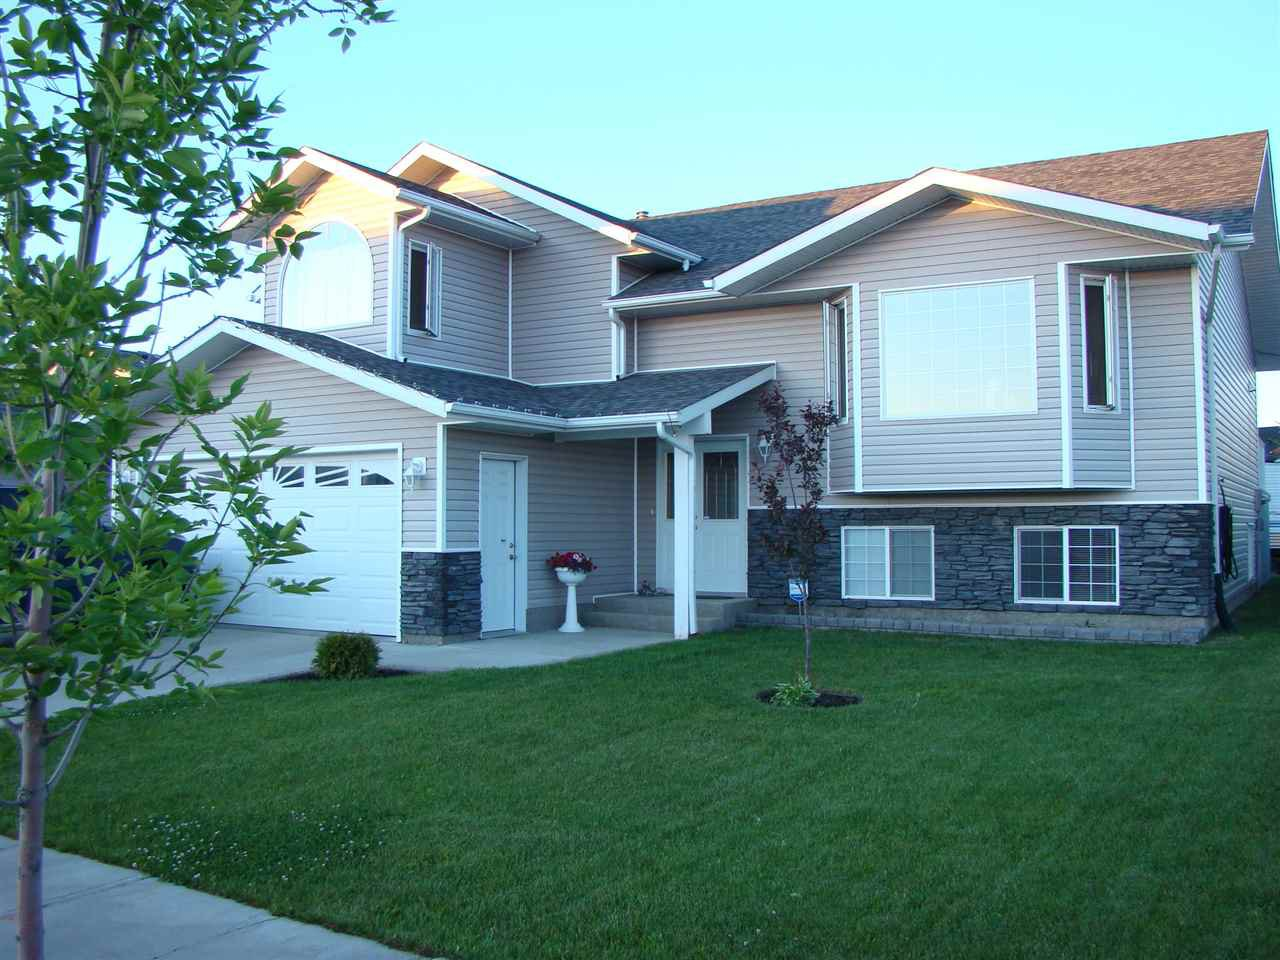 Main Photo: 10207 110 Avenue: Westlock House for sale : MLS®# E4140115